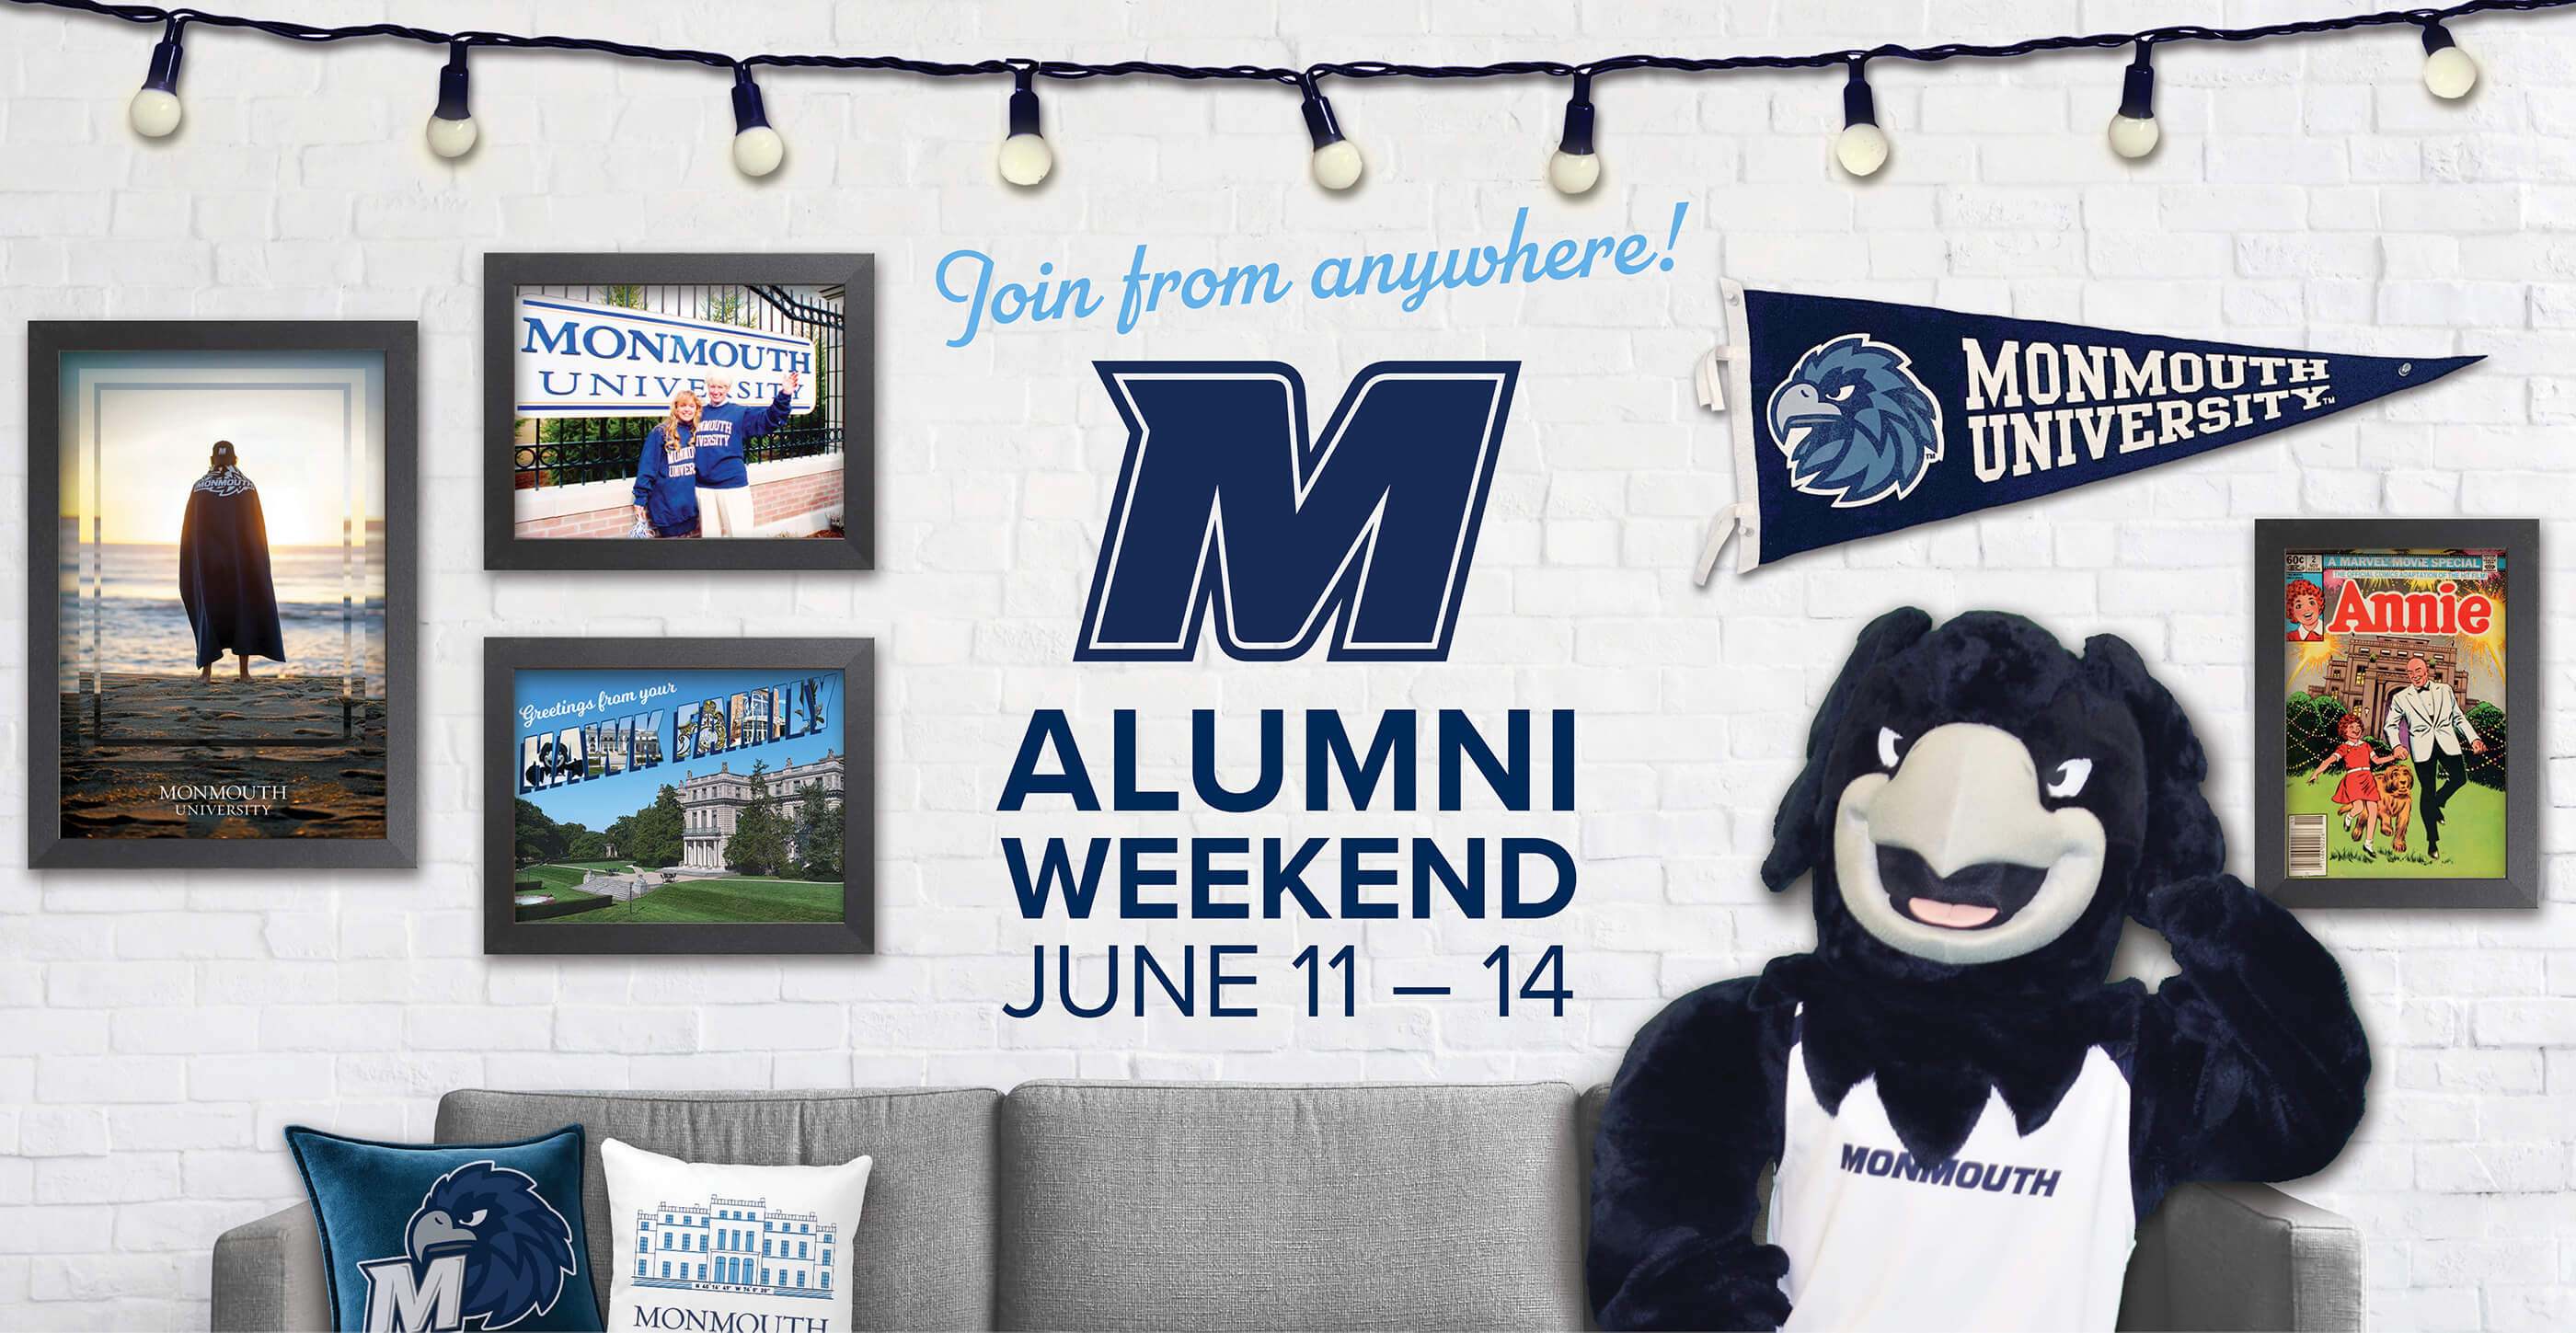 Join from anywhere! Alumni Weekend, June 11-14